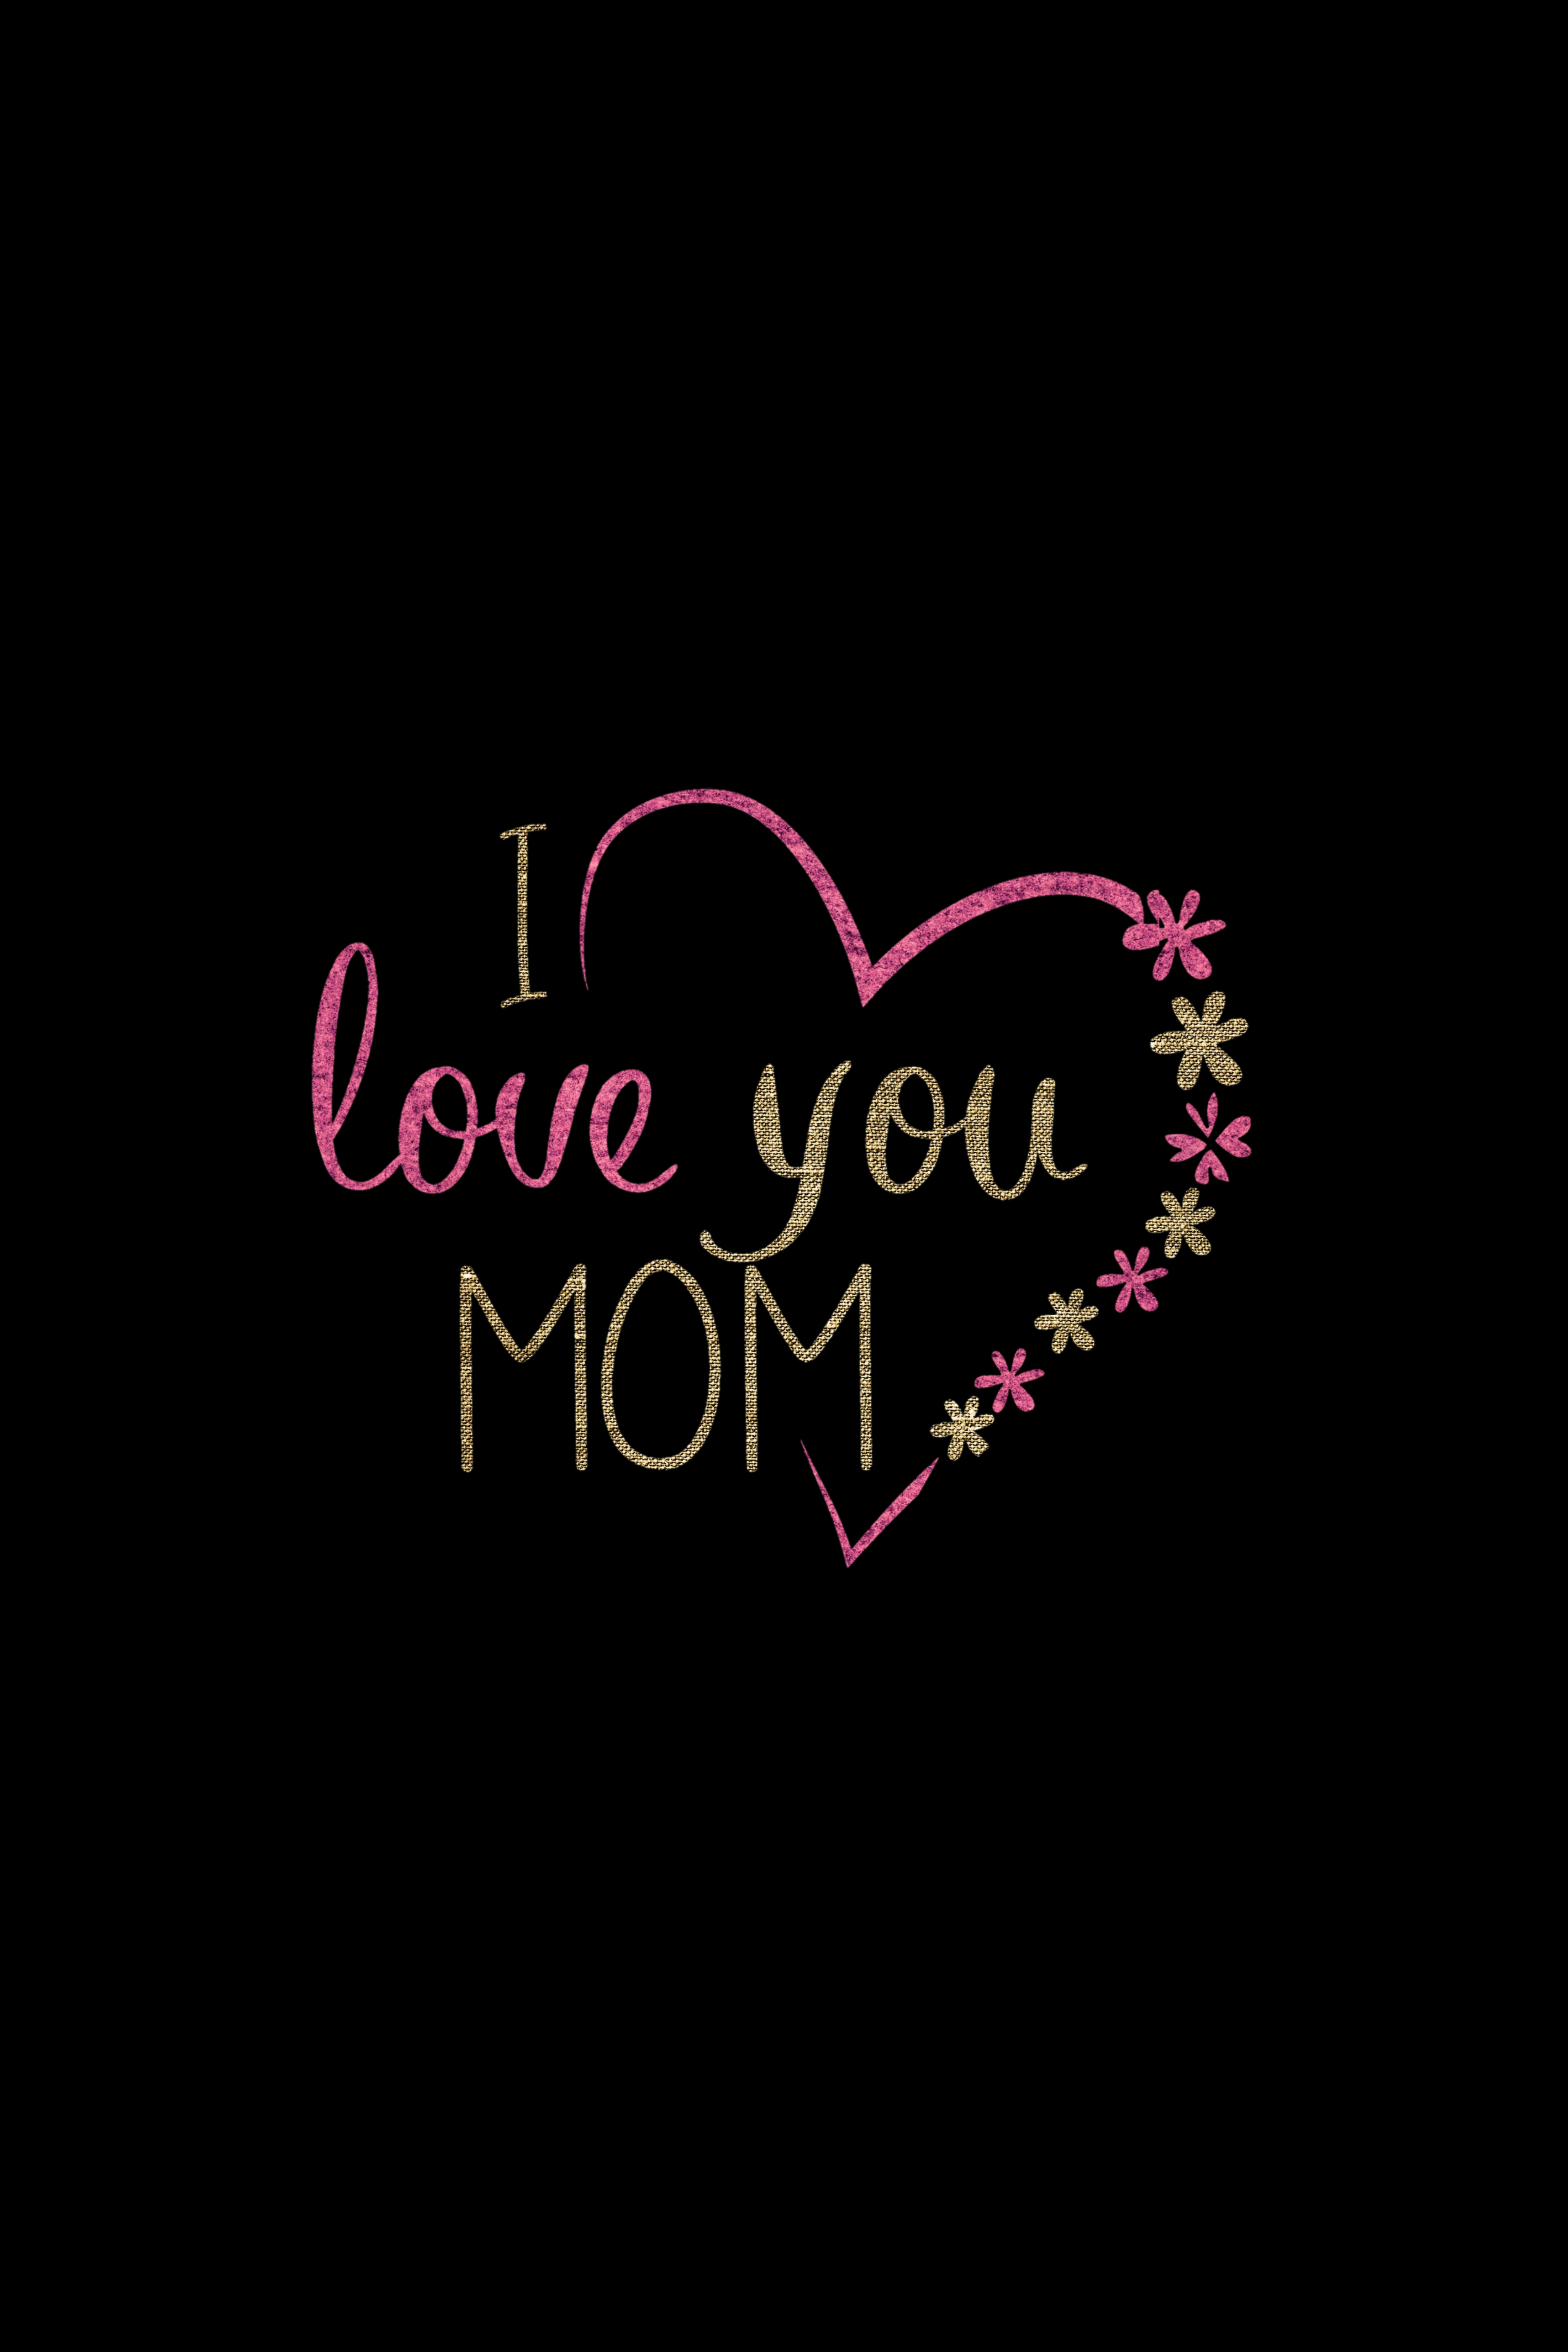 152288 download wallpaper Mum, Mummy, Love, Heart, Inscription, Flowers screensavers and pictures for free